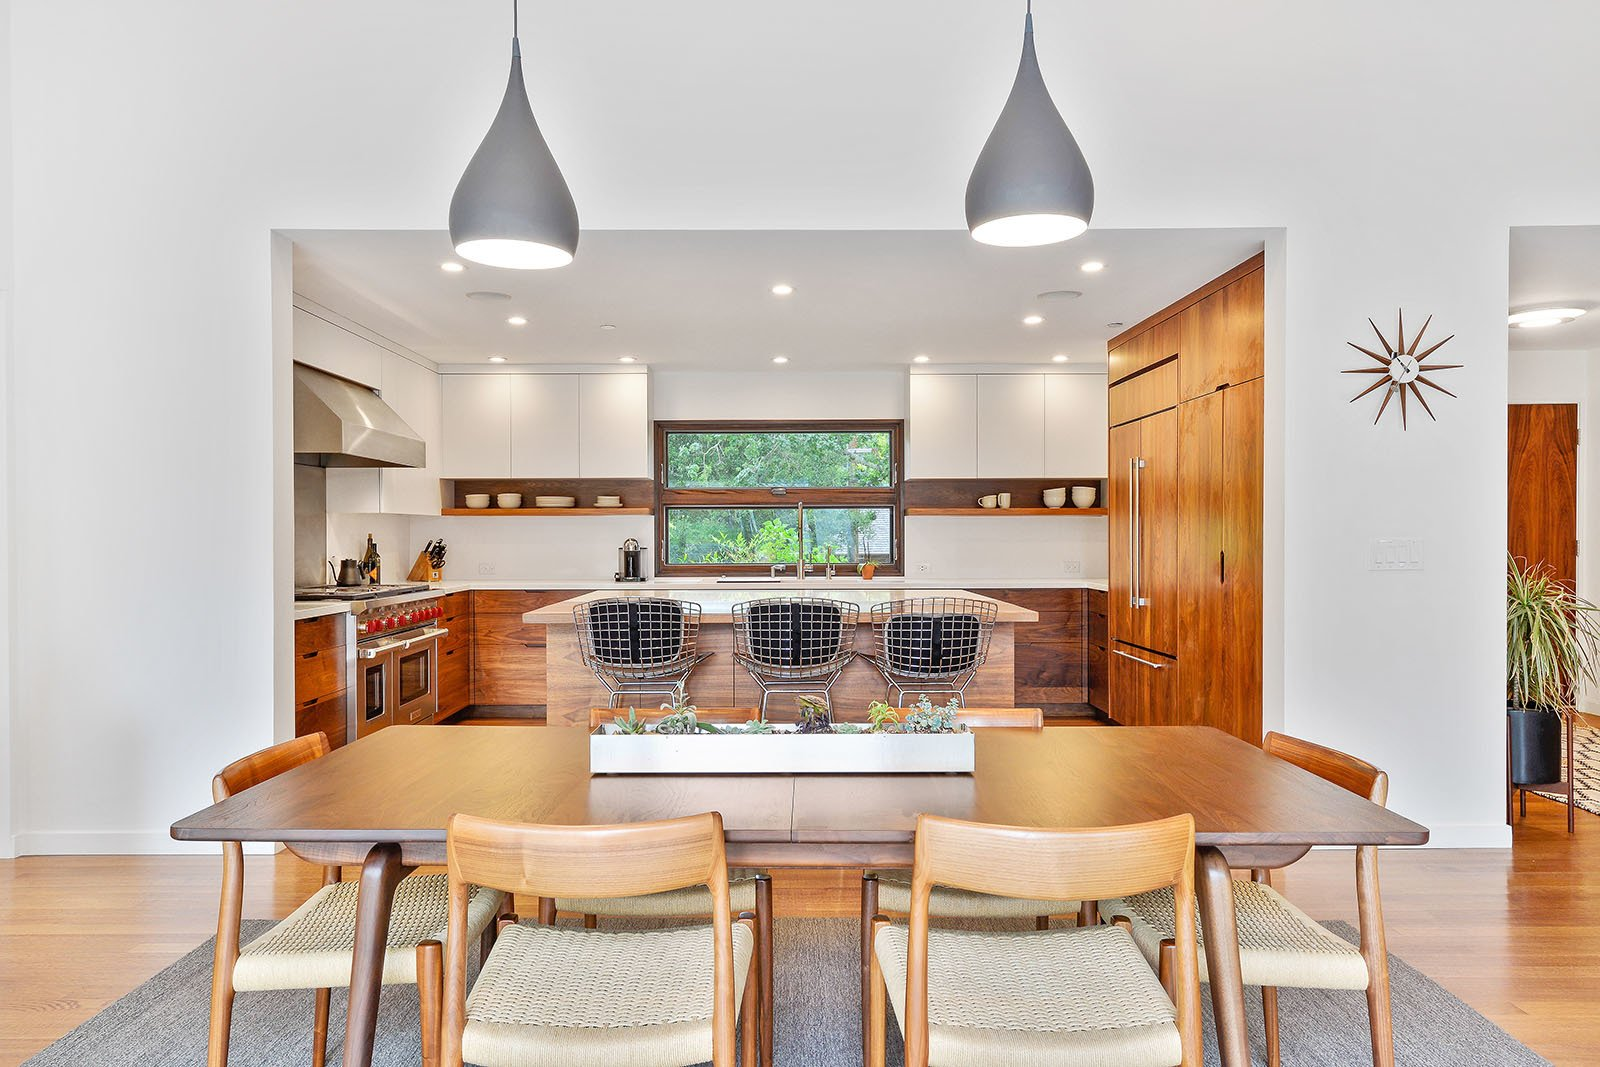 Dining room Tagged: Dining Room, Table, Lamps, Chair, Pendant Lighting, Medium Hardwood Floor, and Ceiling Lighting.  Portola Valley by patrick perez/designpad architecture